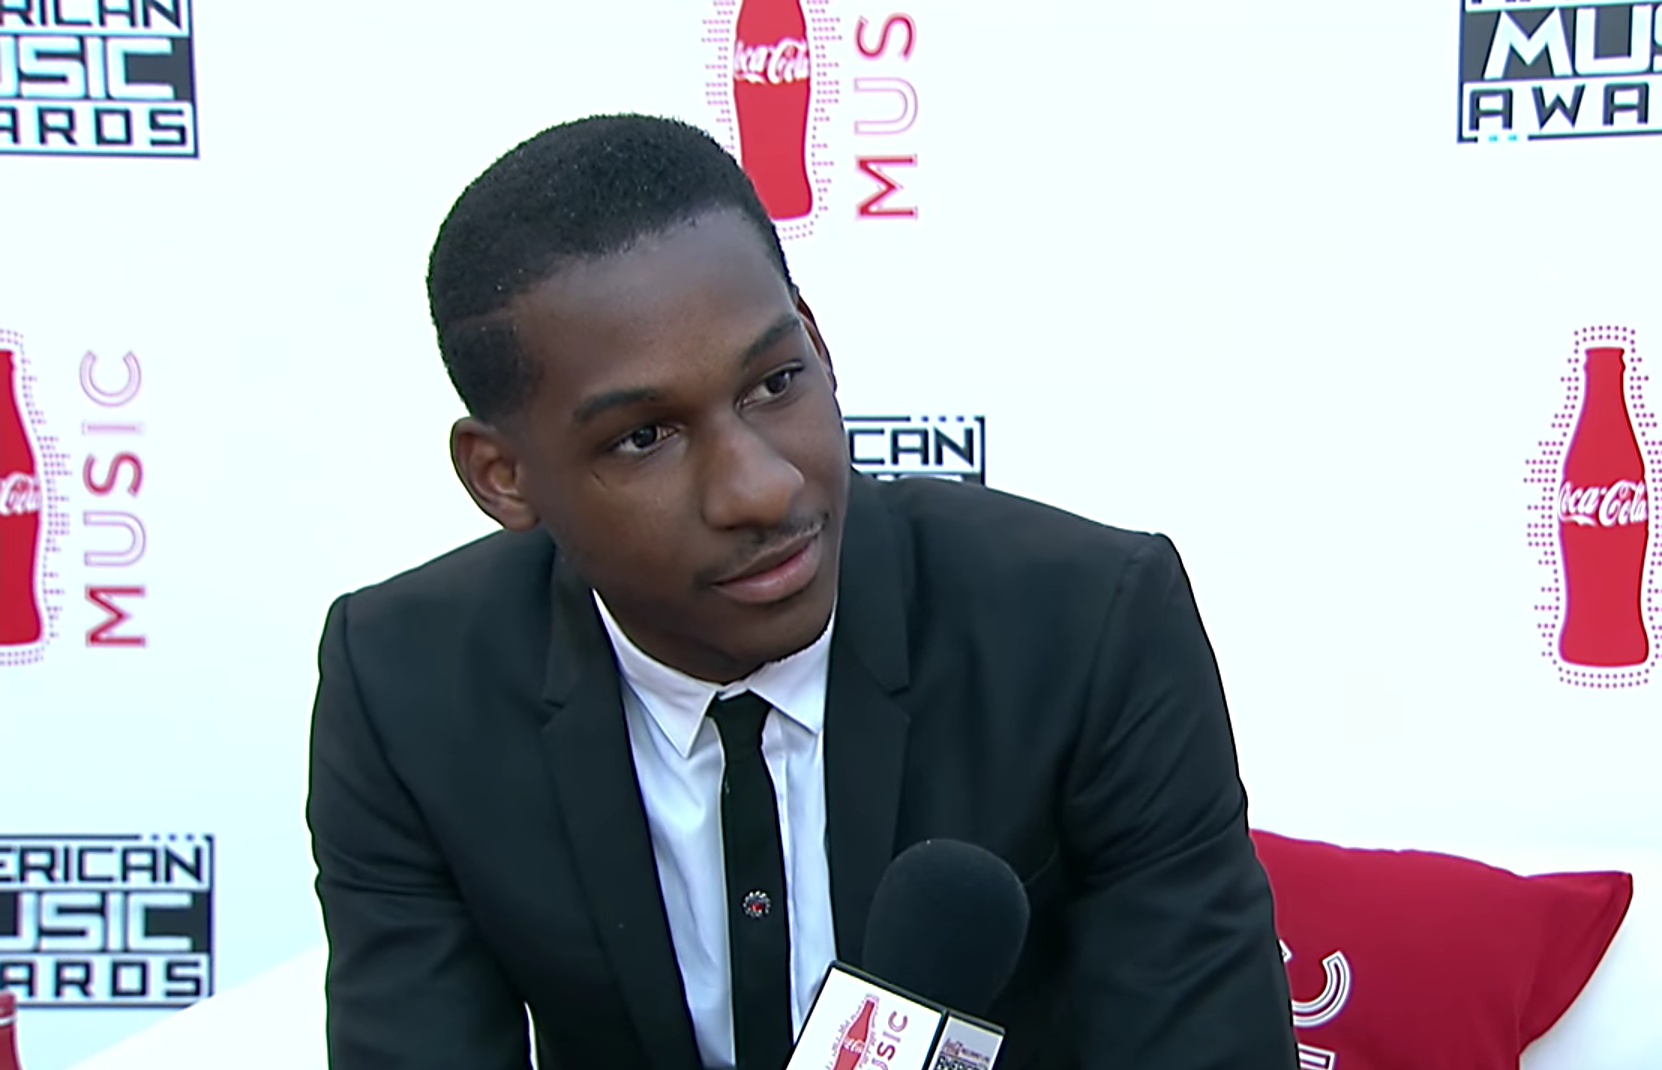 Leon Bridges at the American Music Awards. Photo by: American Music Awards / YouTube